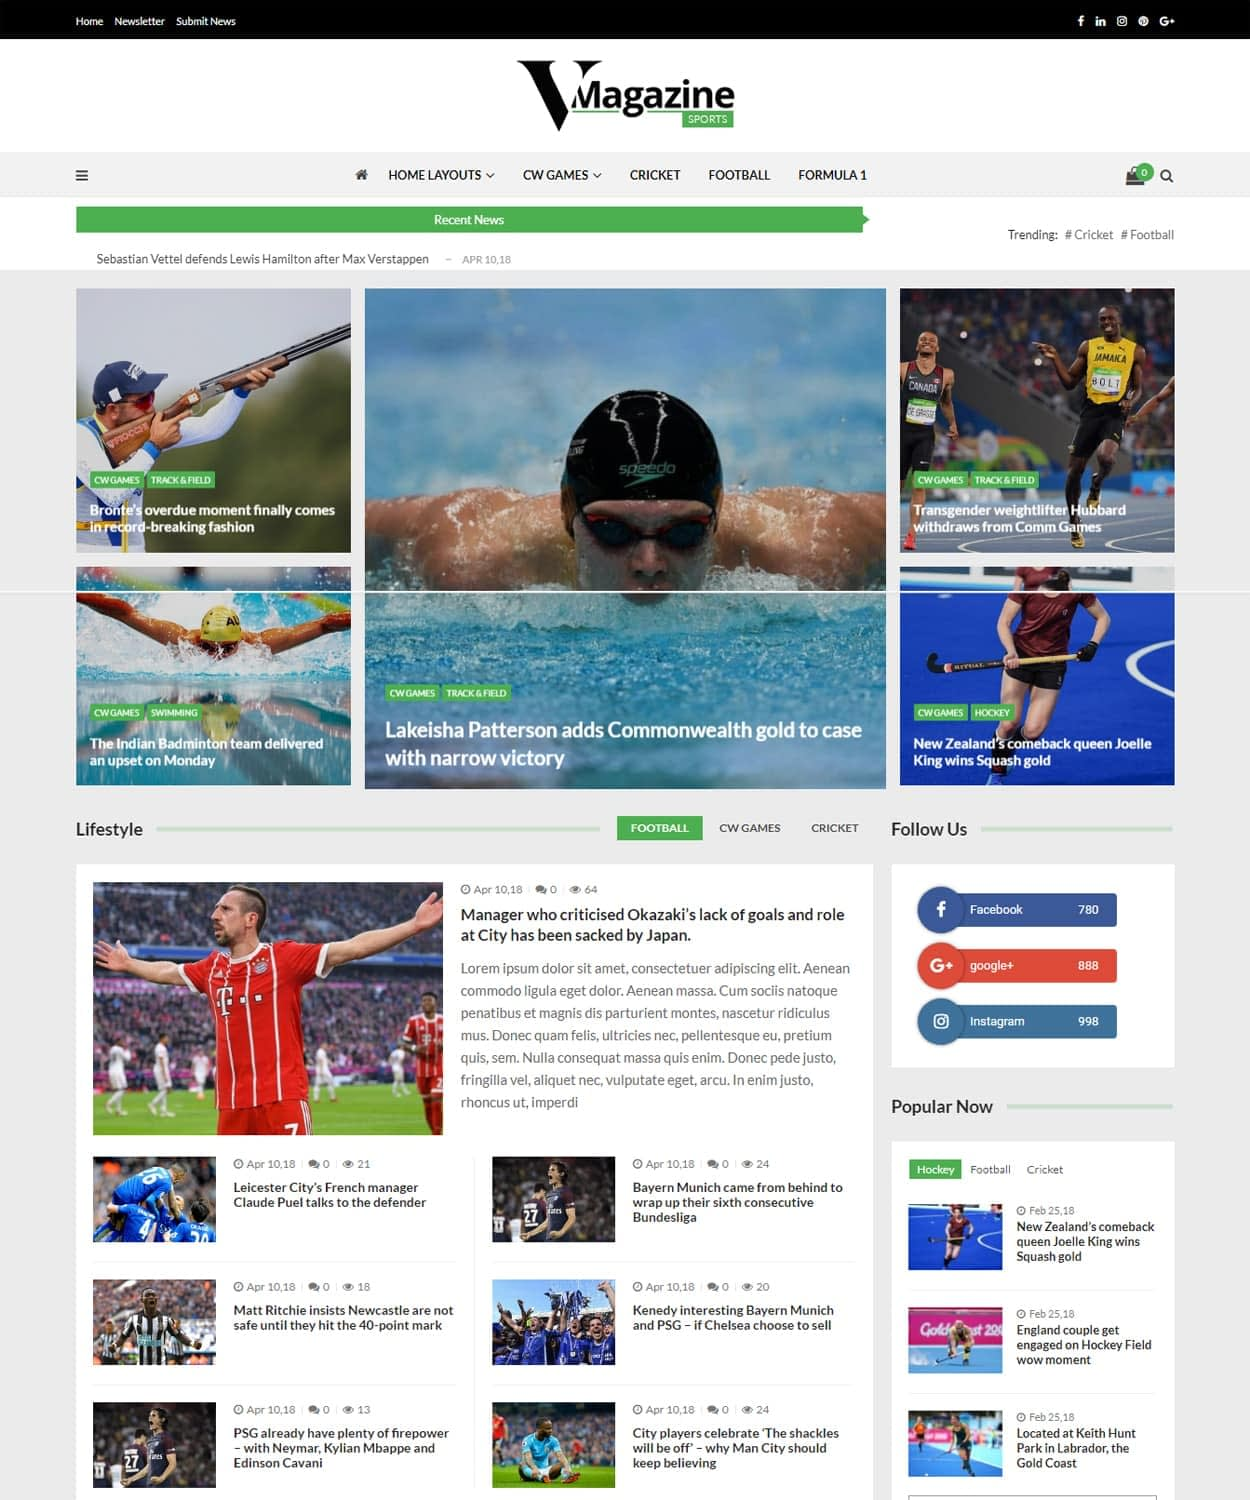 vmagazine sports - VMagazine Review - A hassle free, simple, clean and beautiful WordPress theme to start your news and magazine website